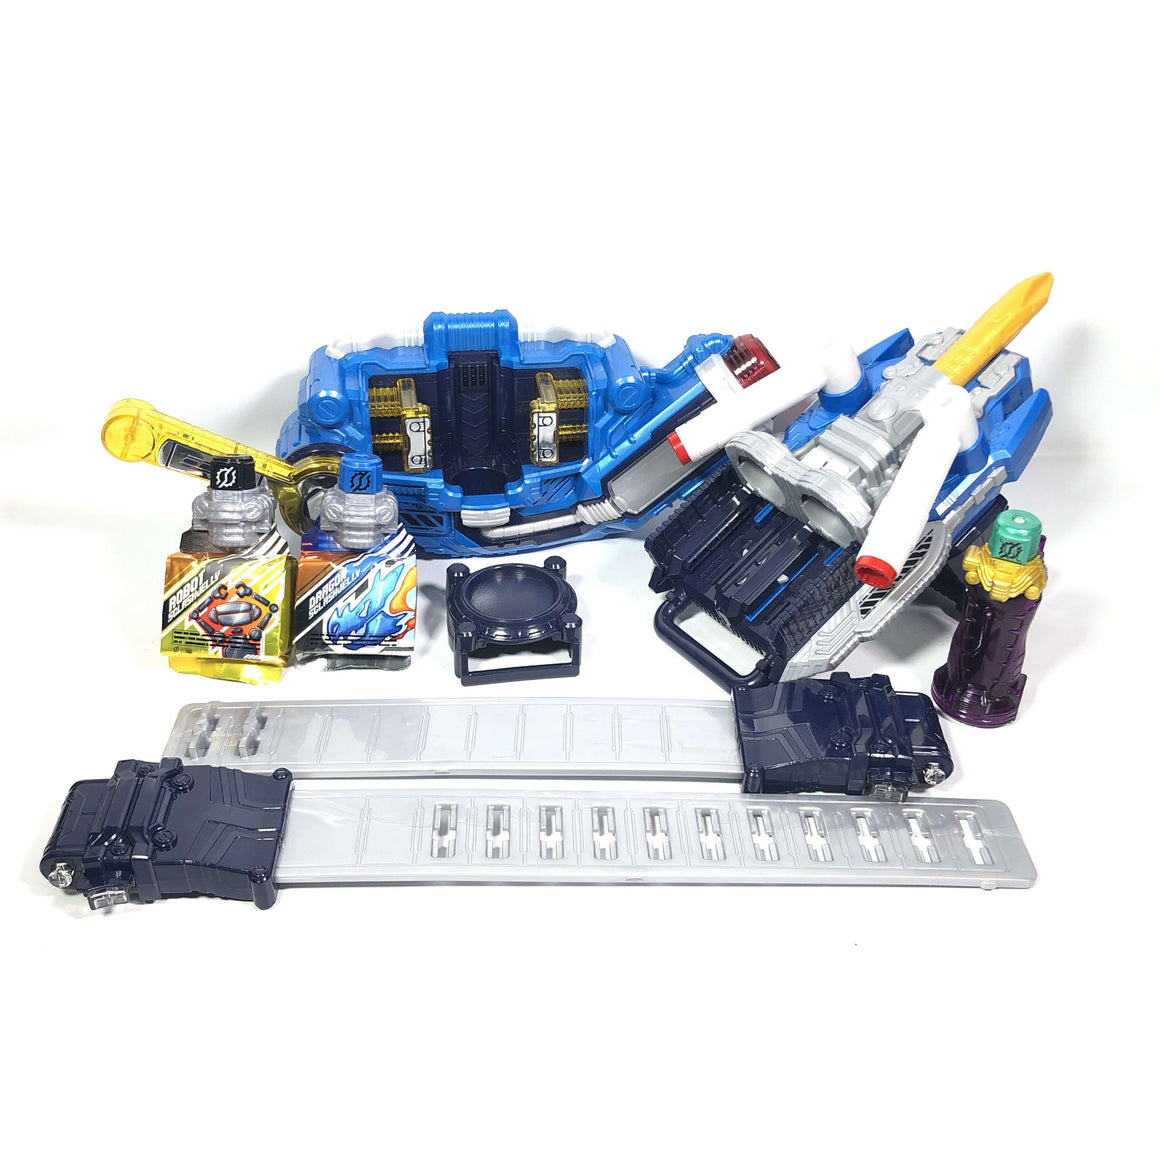 CSTOYS INTERNATIONAL:[LOOSE] Kamen Rider Build: DX Sclash Driver, Twin Breaker Special Set with DX Crocodile Crack Fullbottle